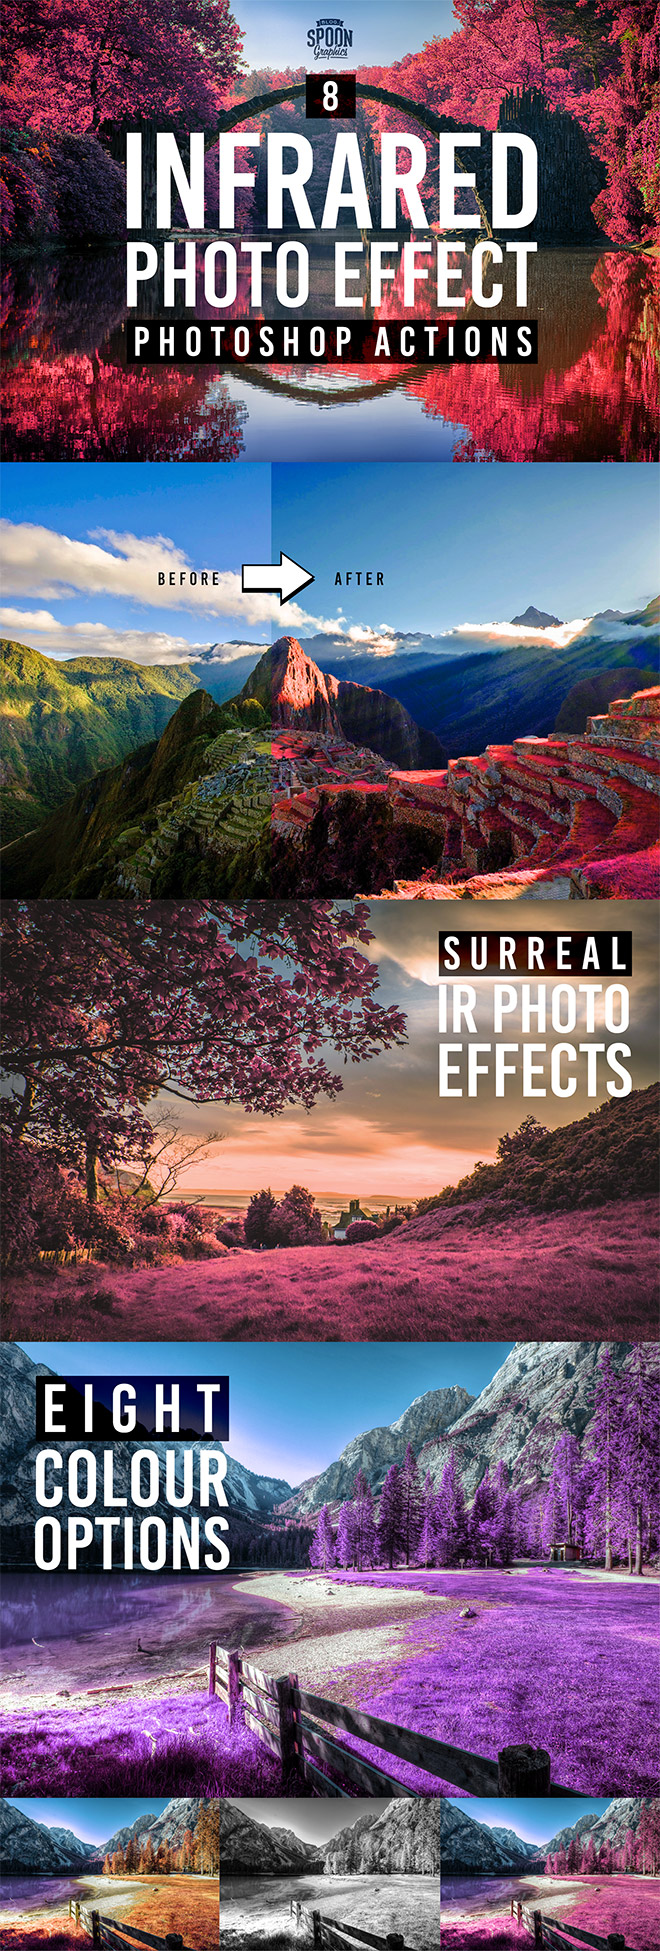 8 Free Infrared Photo Effect Actions for Adobe Photoshop